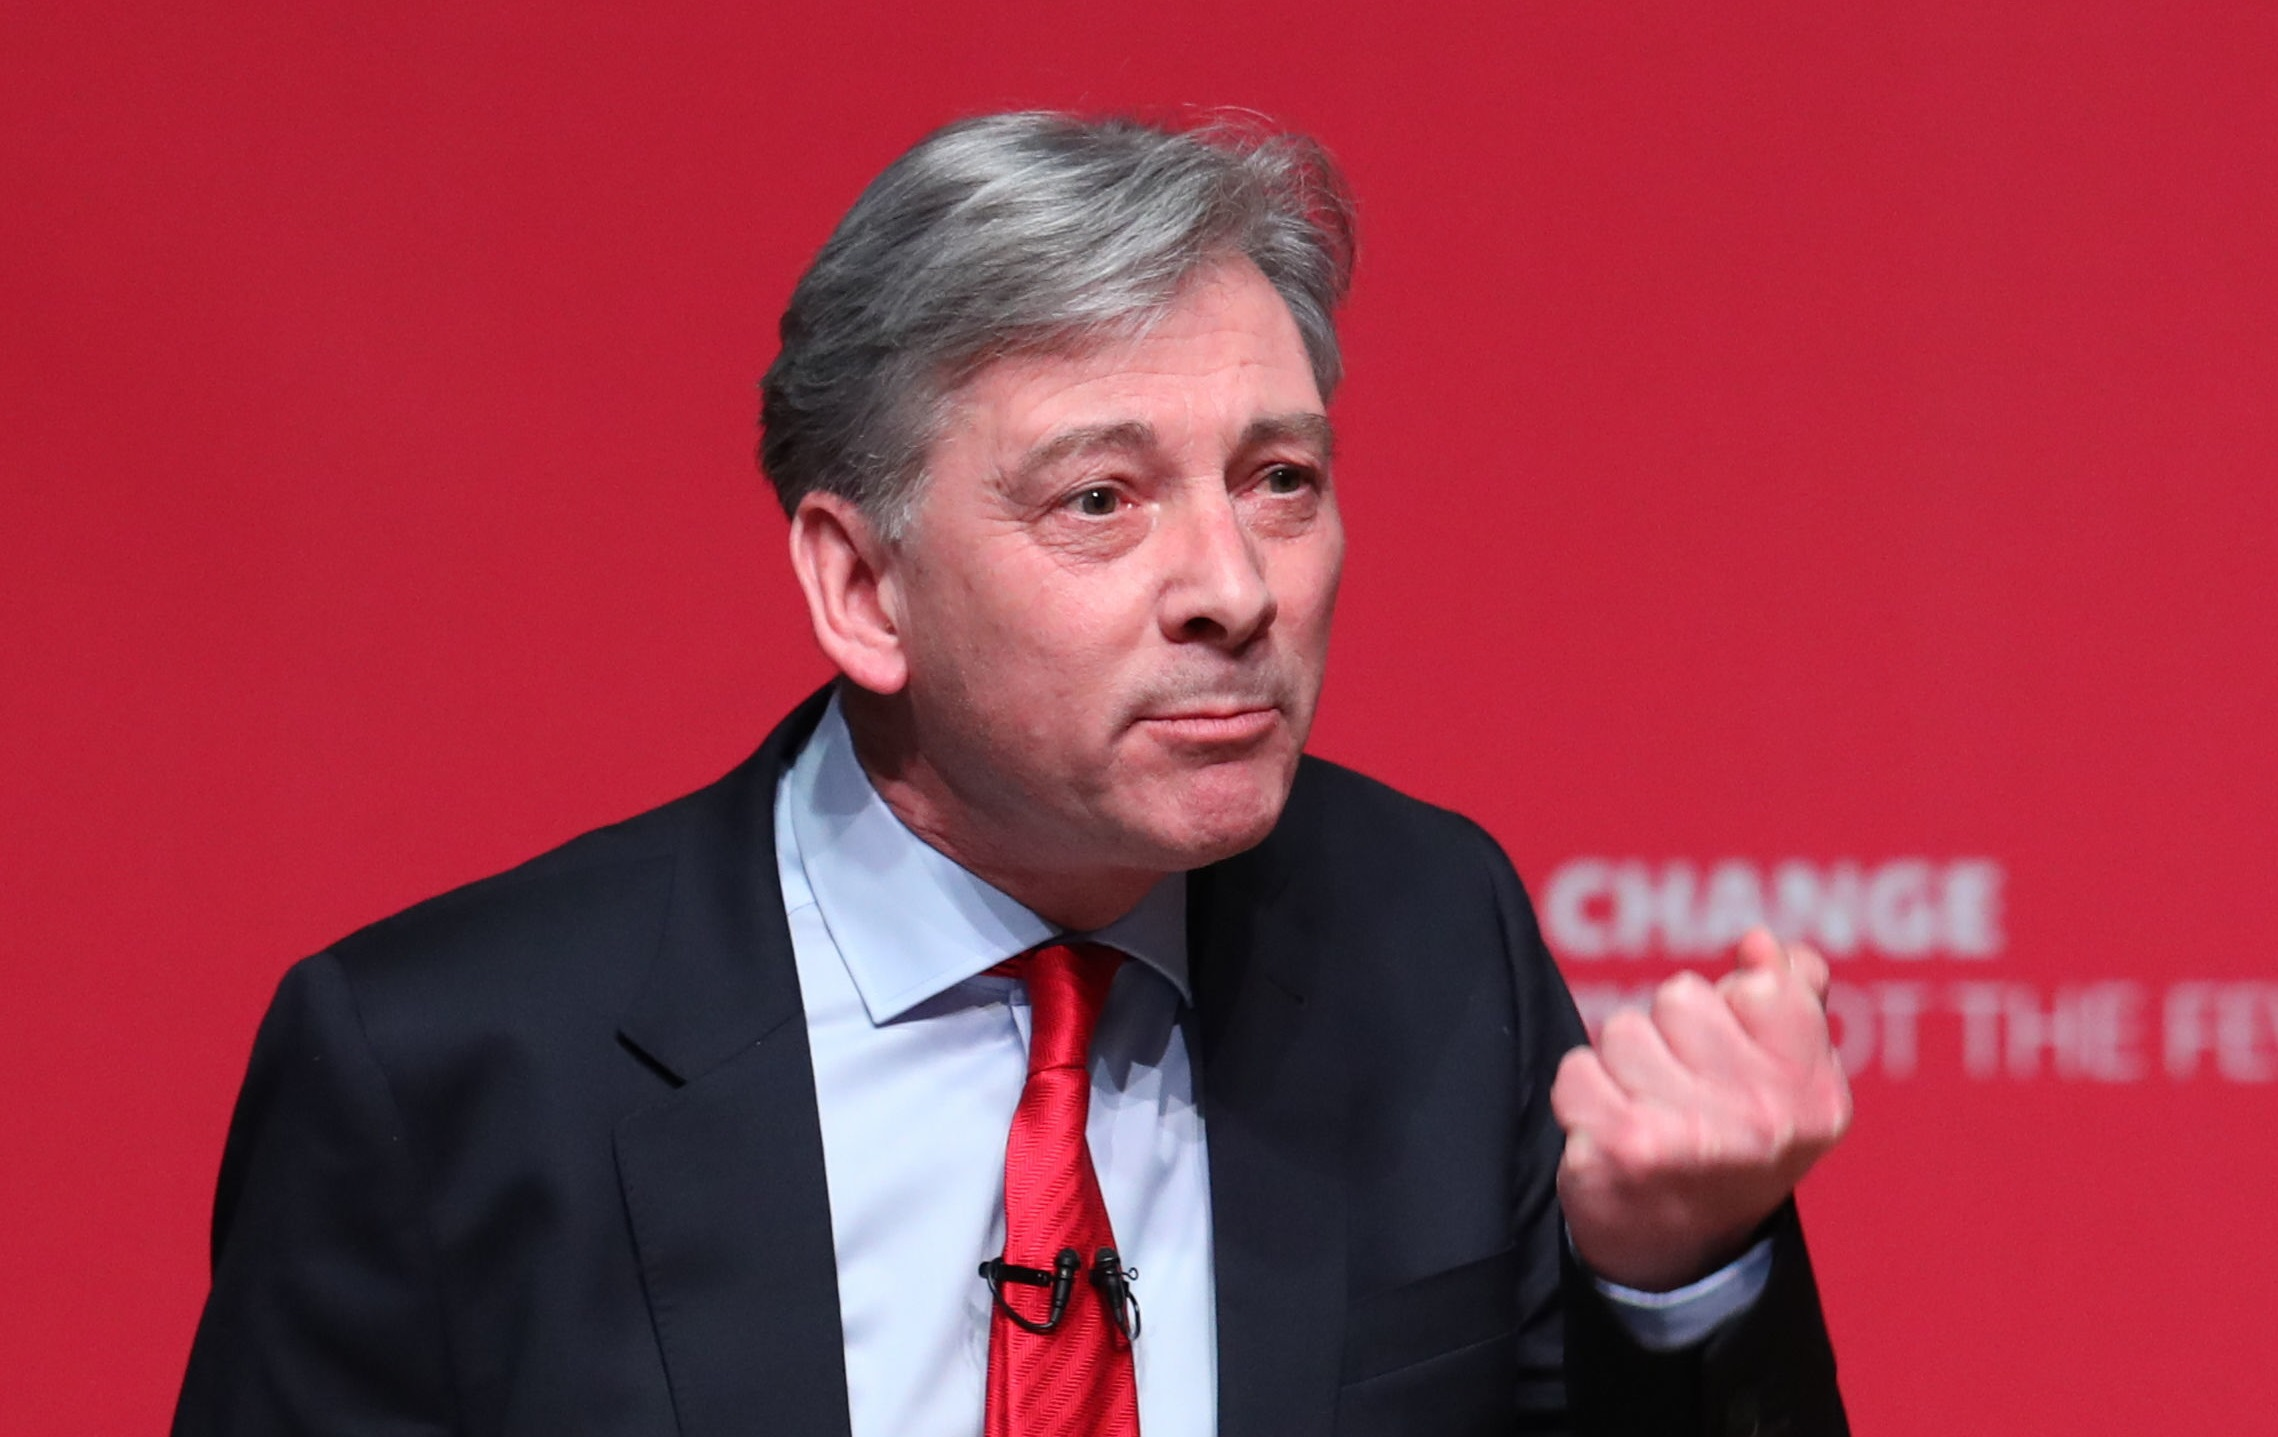 Labour leader Richard Leonard wasn't in good form heading into the World Cup